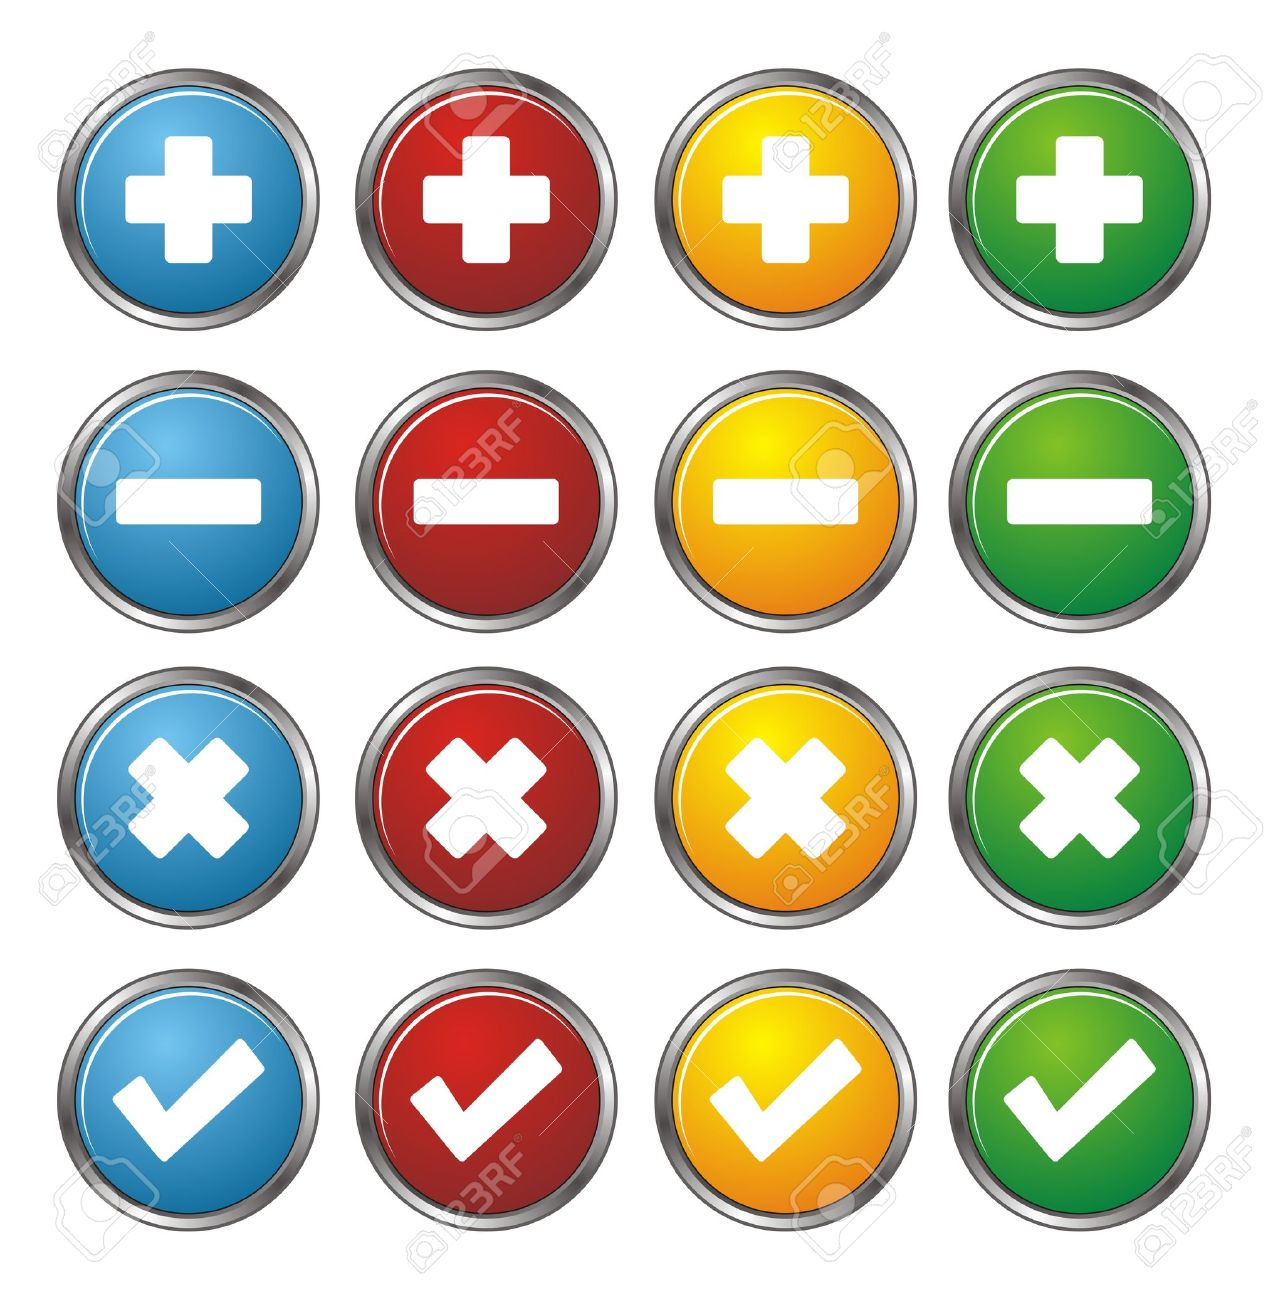 plus, minus, check, cross circle buttons Stock Vector - 22509569